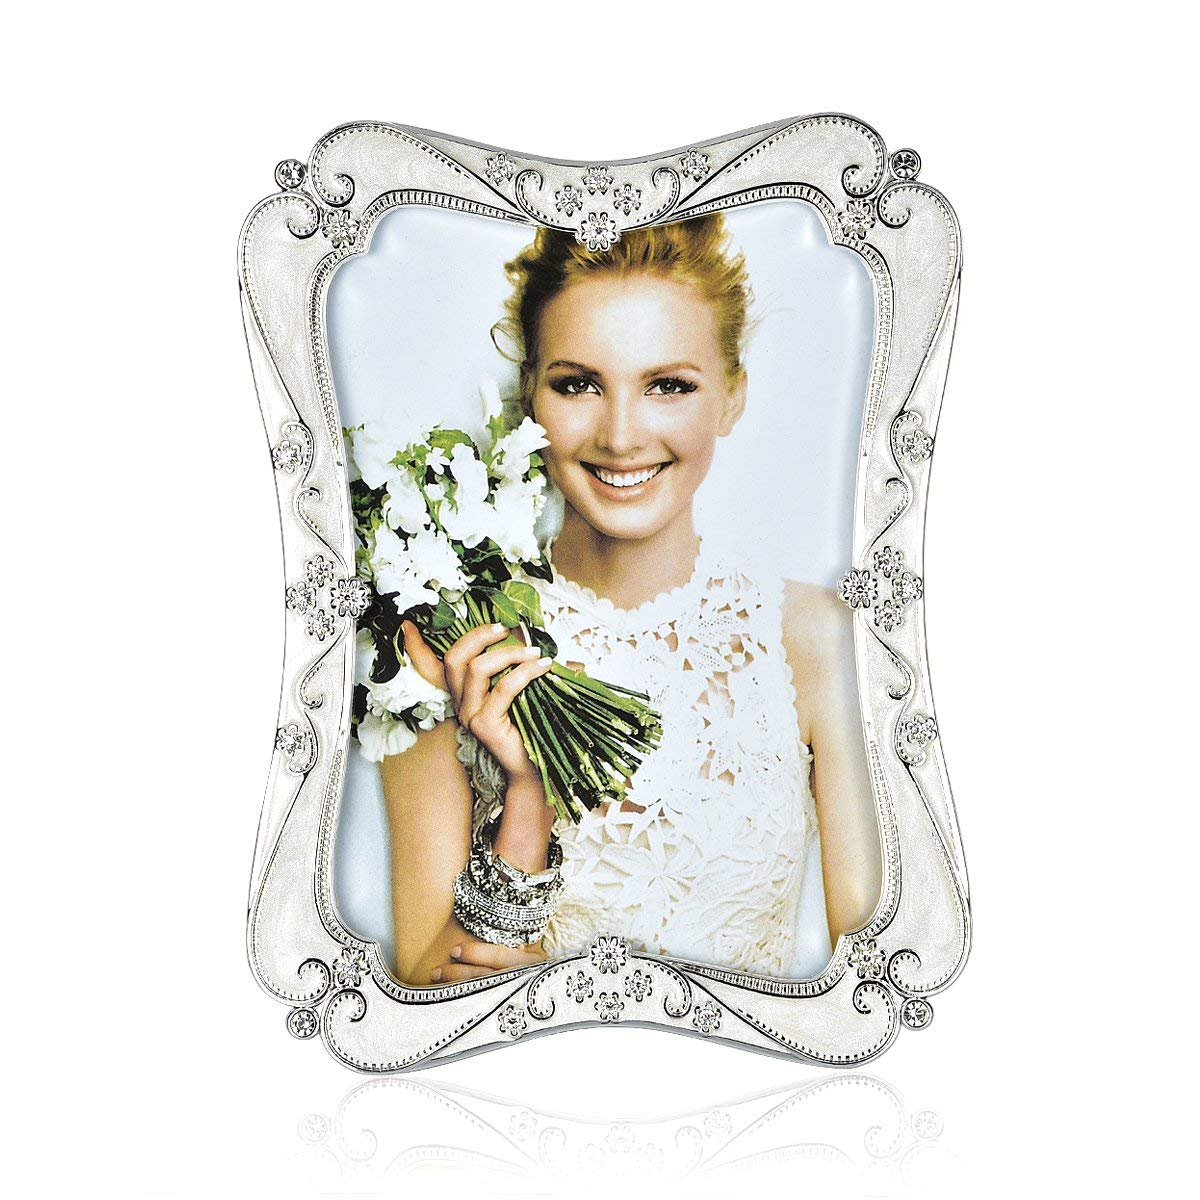 Wedding Photo Frame Silver Plated Picture Frame - EPOXY Zinc Alloy 8x10 Inch Metal Marriage Picture Frame - Inlay Rhinestones Photo Frames Blocks for Family Love Baby